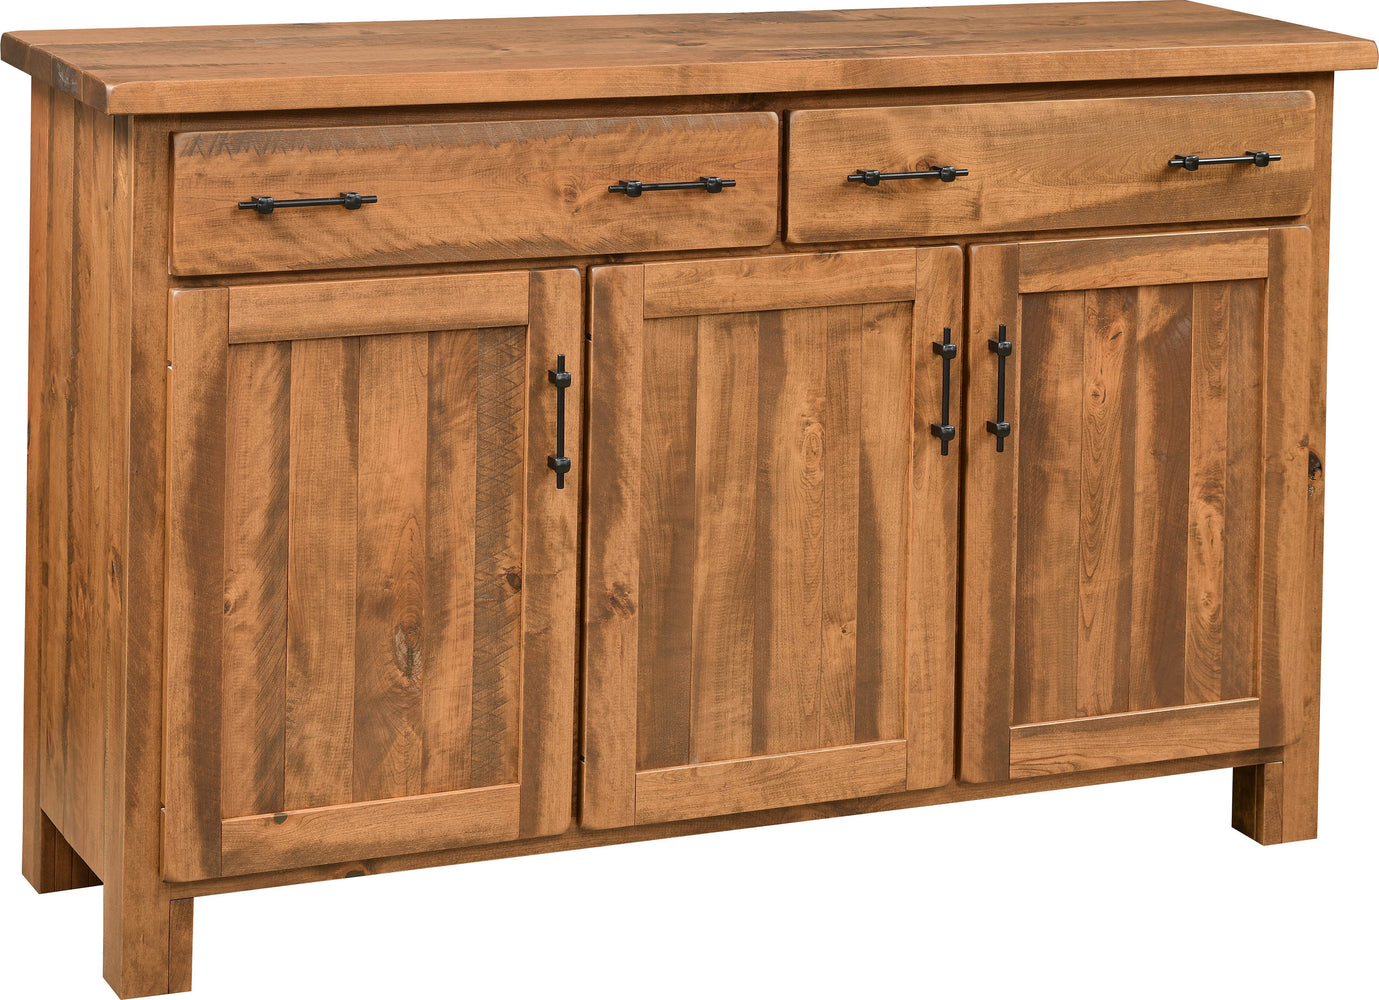 Roxford Amish Customizable Ruffsawn Server - 3 Door